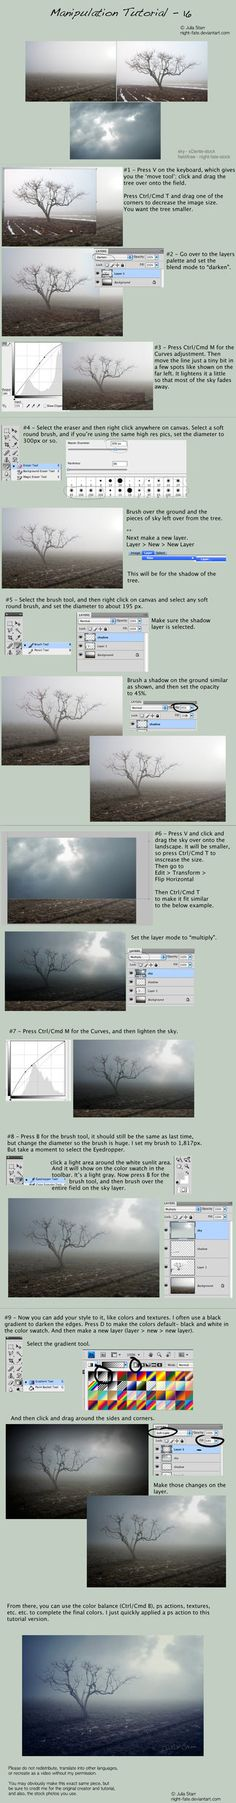 Nature Photoshop tutorial